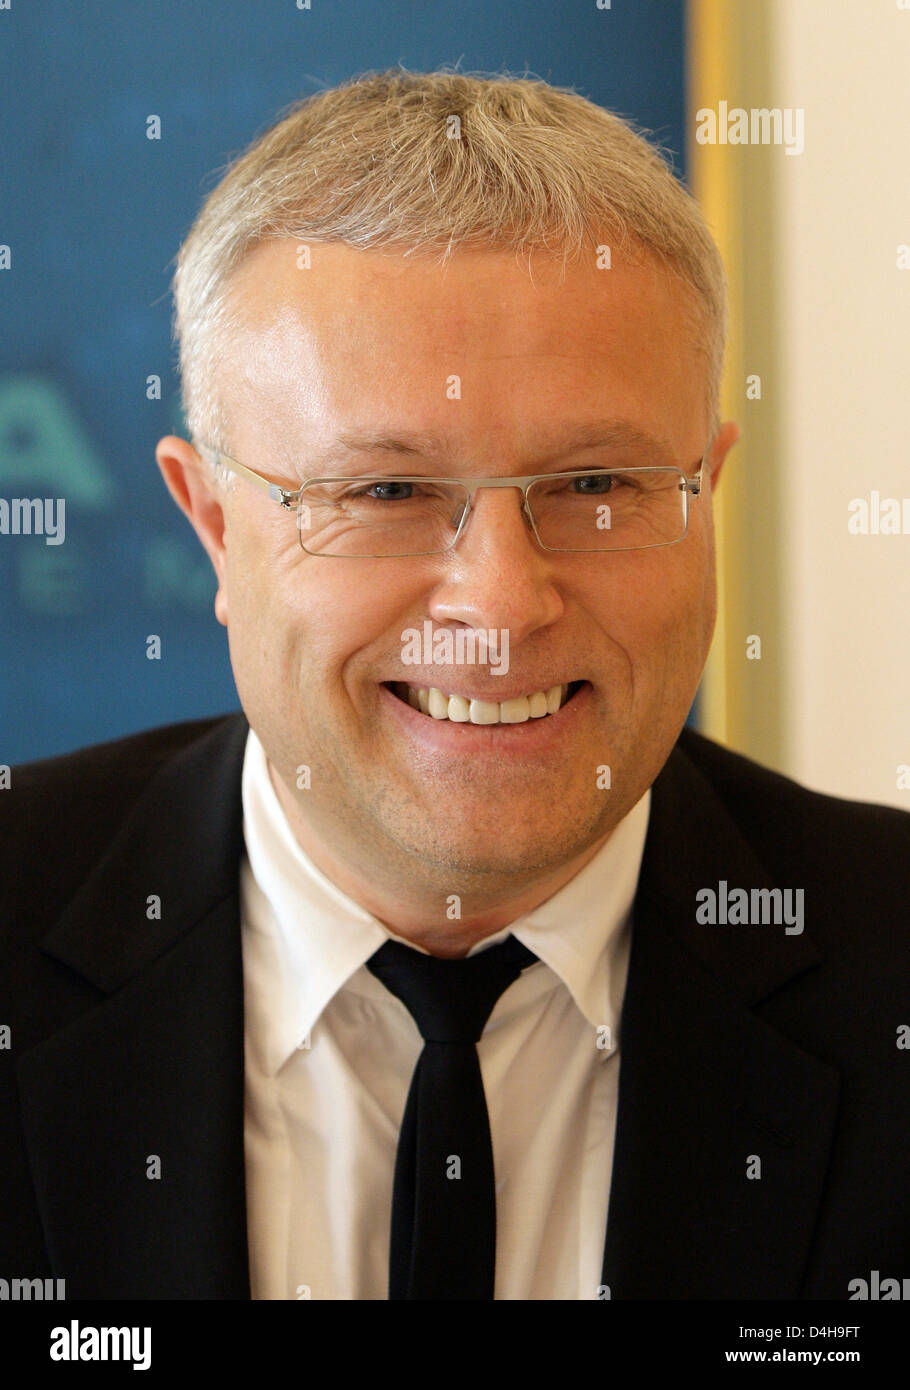 Alexander Lebedev, Russian billionaire and former KGB-officer, delivers a speech on effects of the financial crisis - Stock Image